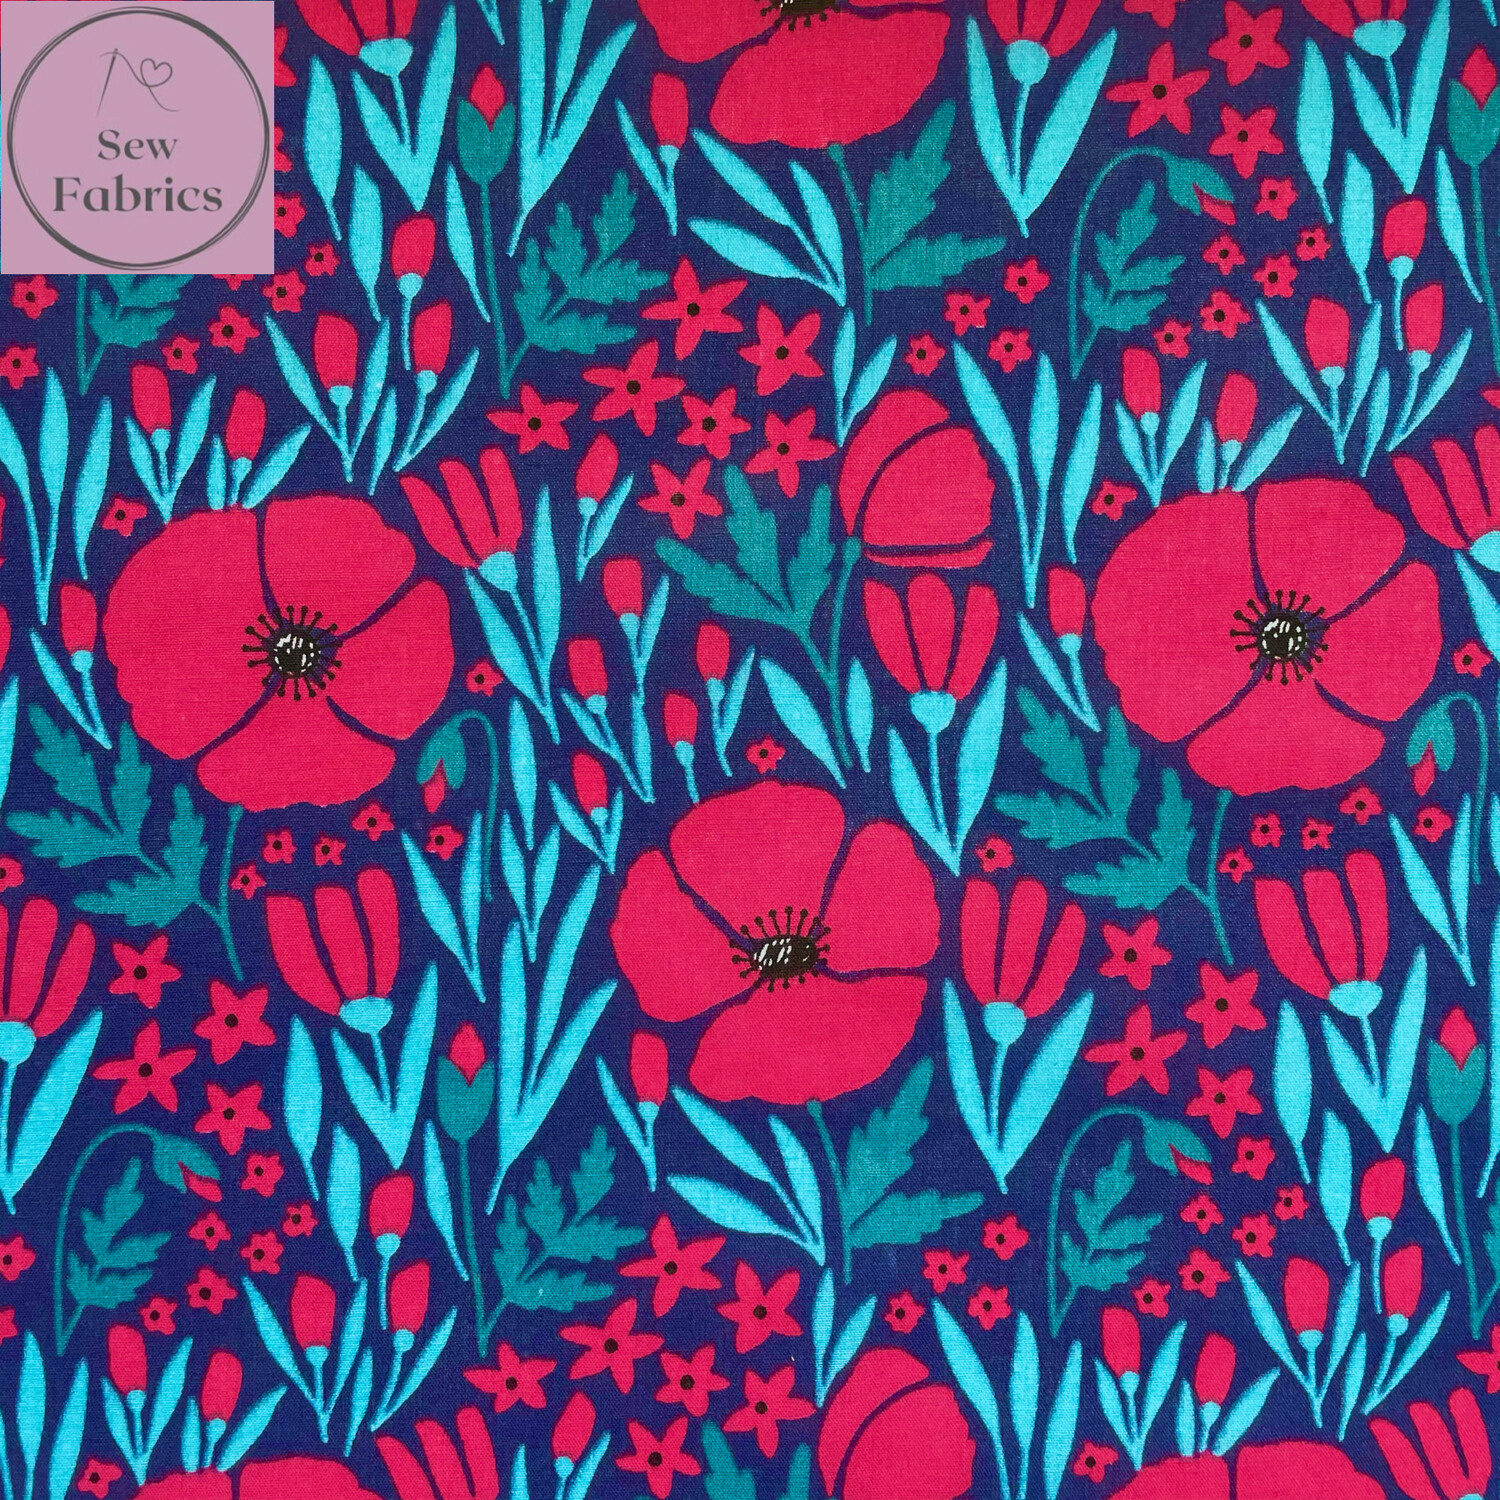 Navy Blue Poppy Field Print Polycotton Fabric, Floral Craft Material